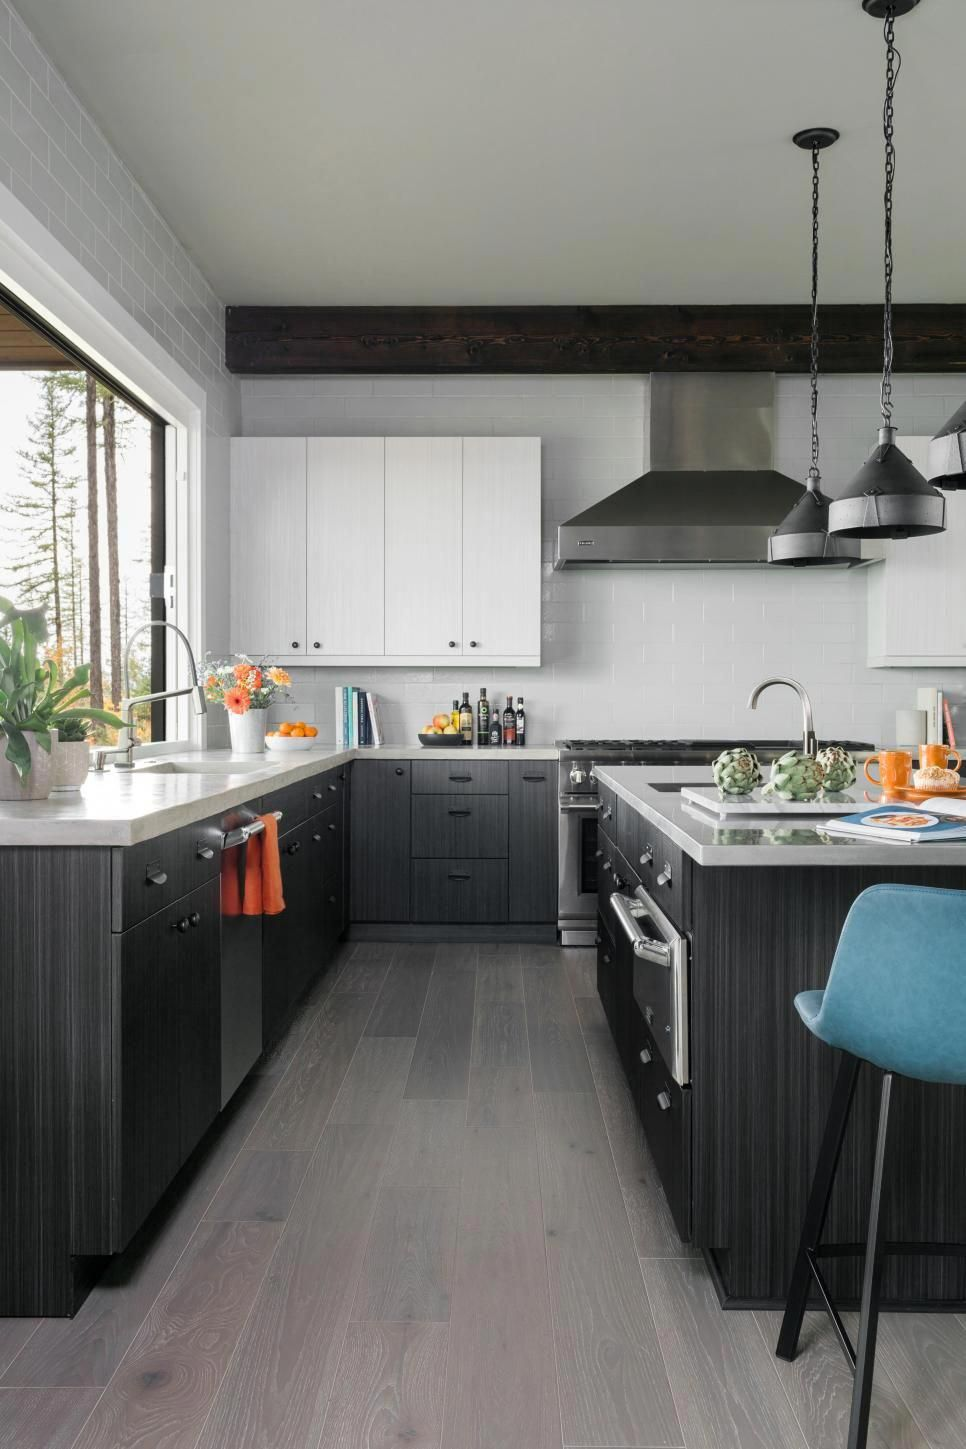 hgtv dream home 2019 kitchen pictures hgtv dream home on best farmhouse kitchen decor ideas and remodel create your dreams id=79415